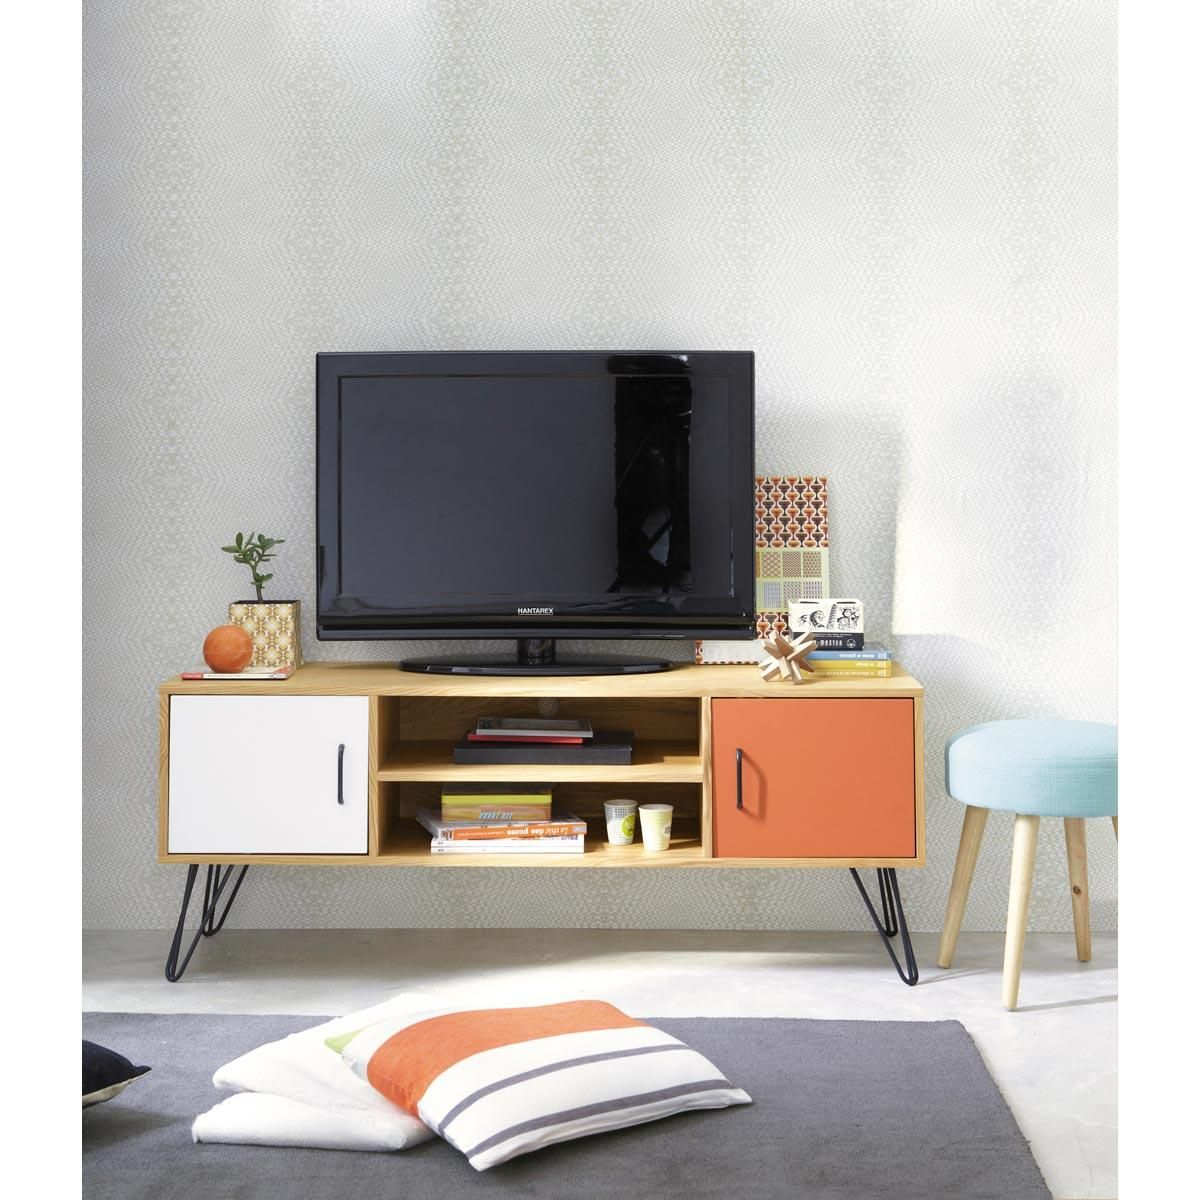 meuble tv bas vintage twist maisons du monde 140 eur repeindre la partie orange en jaune. Black Bedroom Furniture Sets. Home Design Ideas